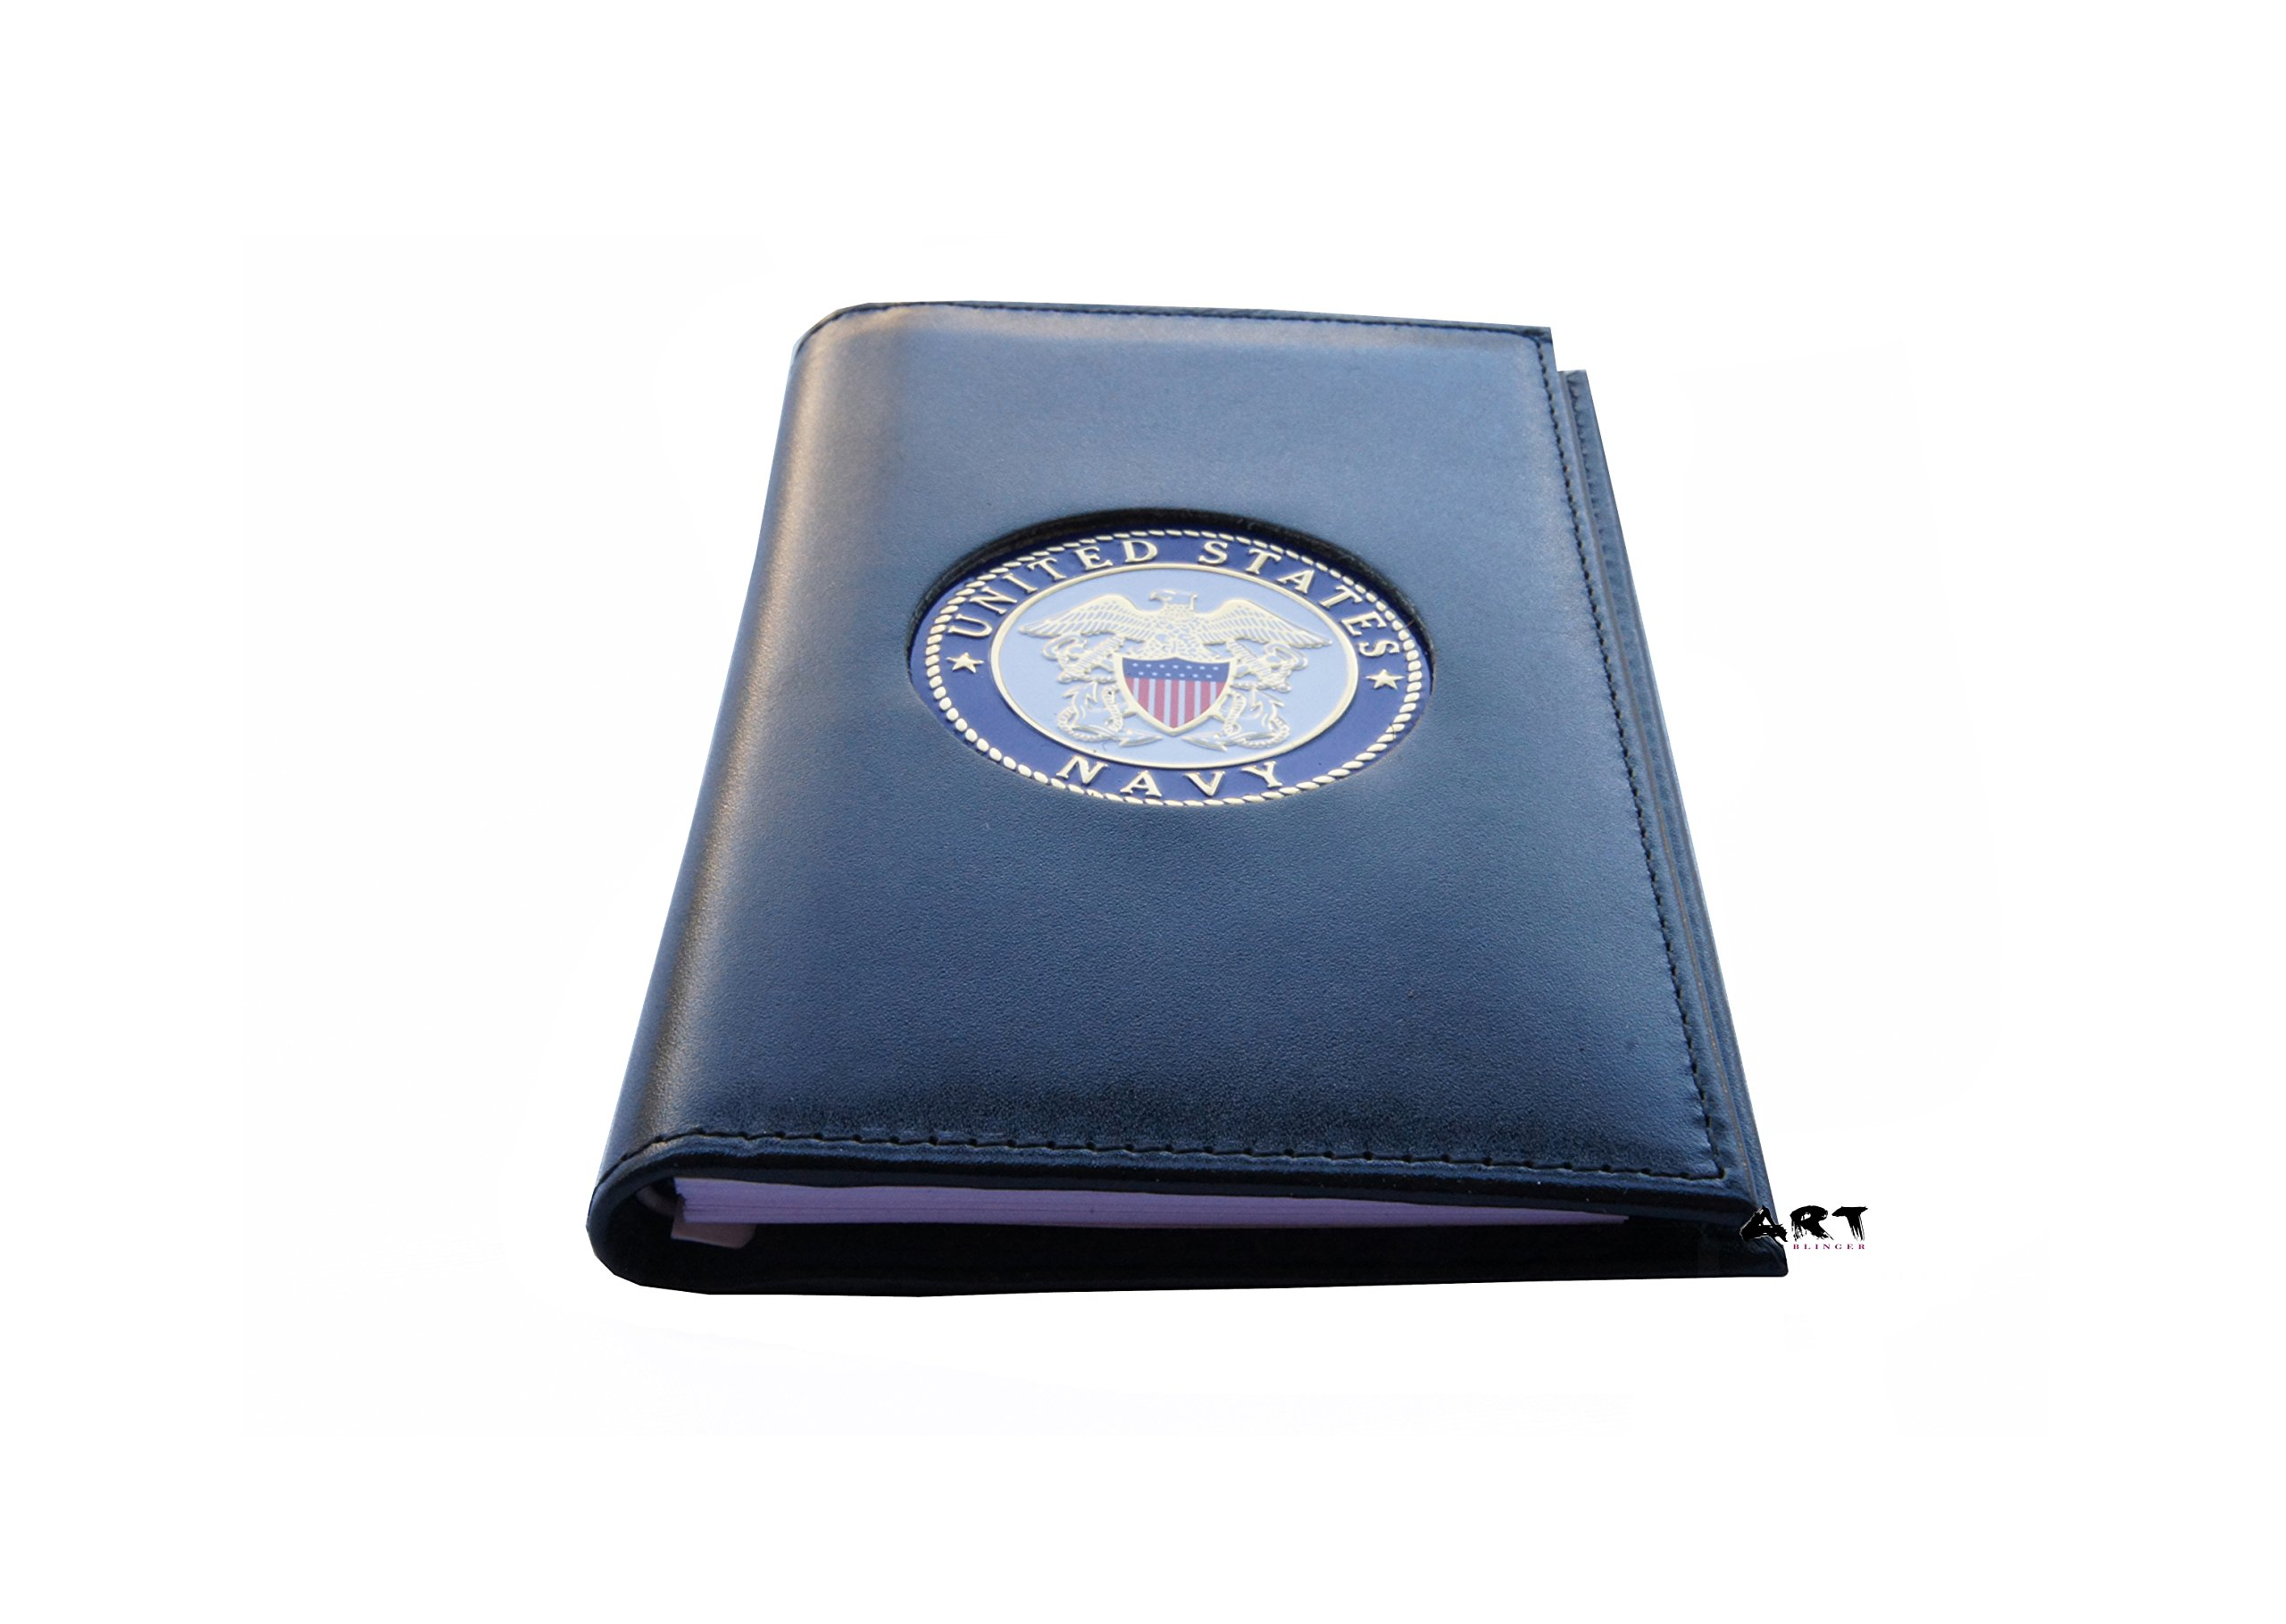 Spiral Notebook Padfolio with Medallion, Official US NAVY Note Pad Cover - 3 x 5